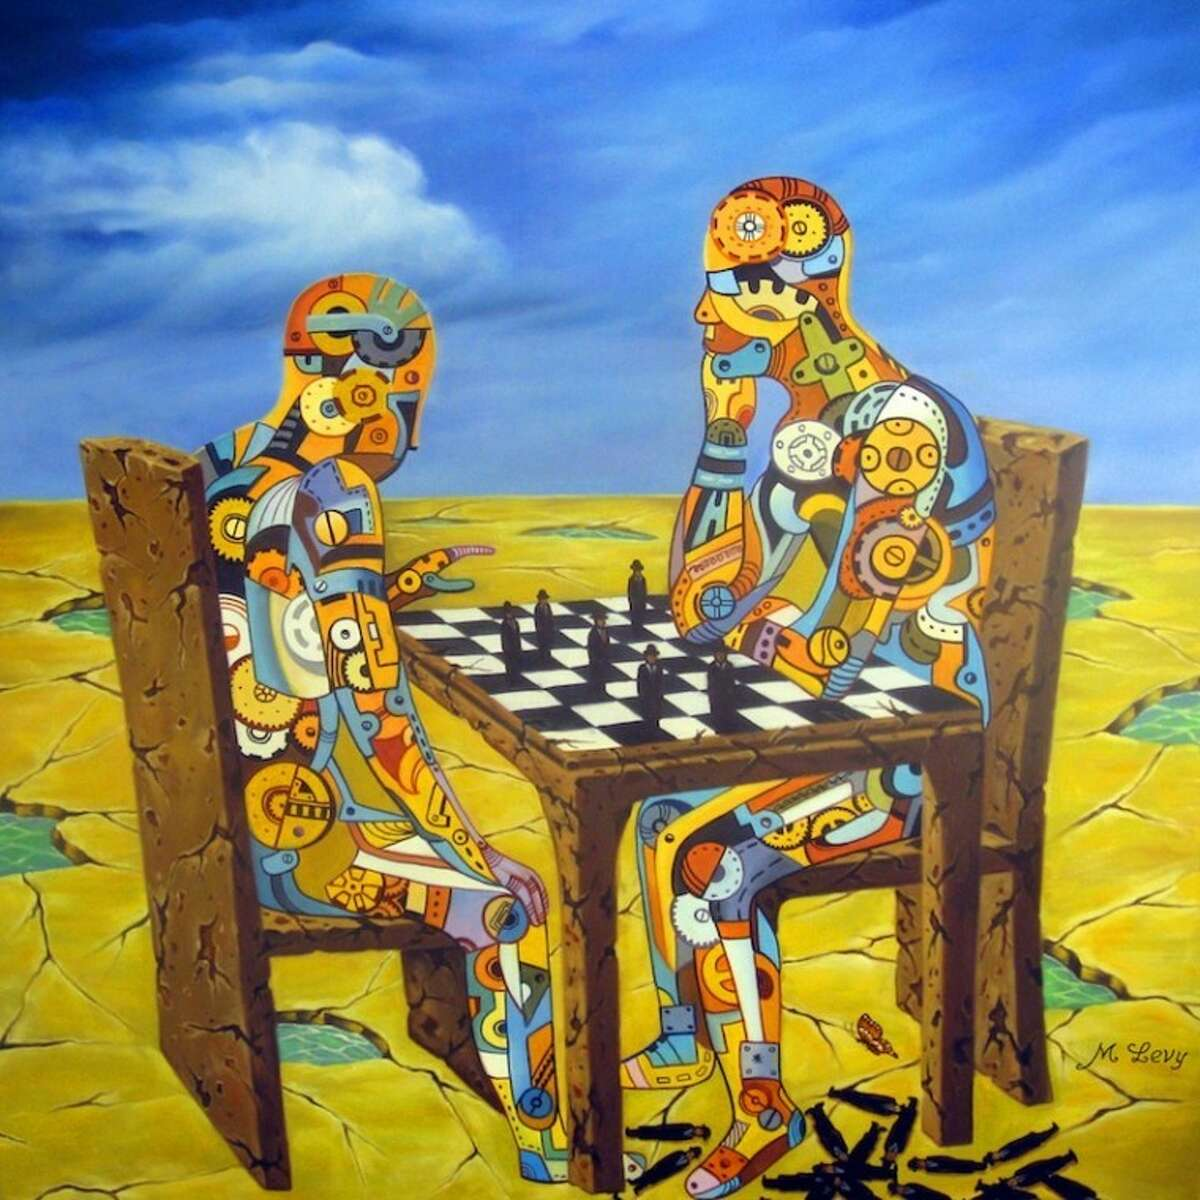 Houstonian Gilber M. Levy, a surrealist painter, will have his work featured at the First Saturday Arts Market on Jan. 7.